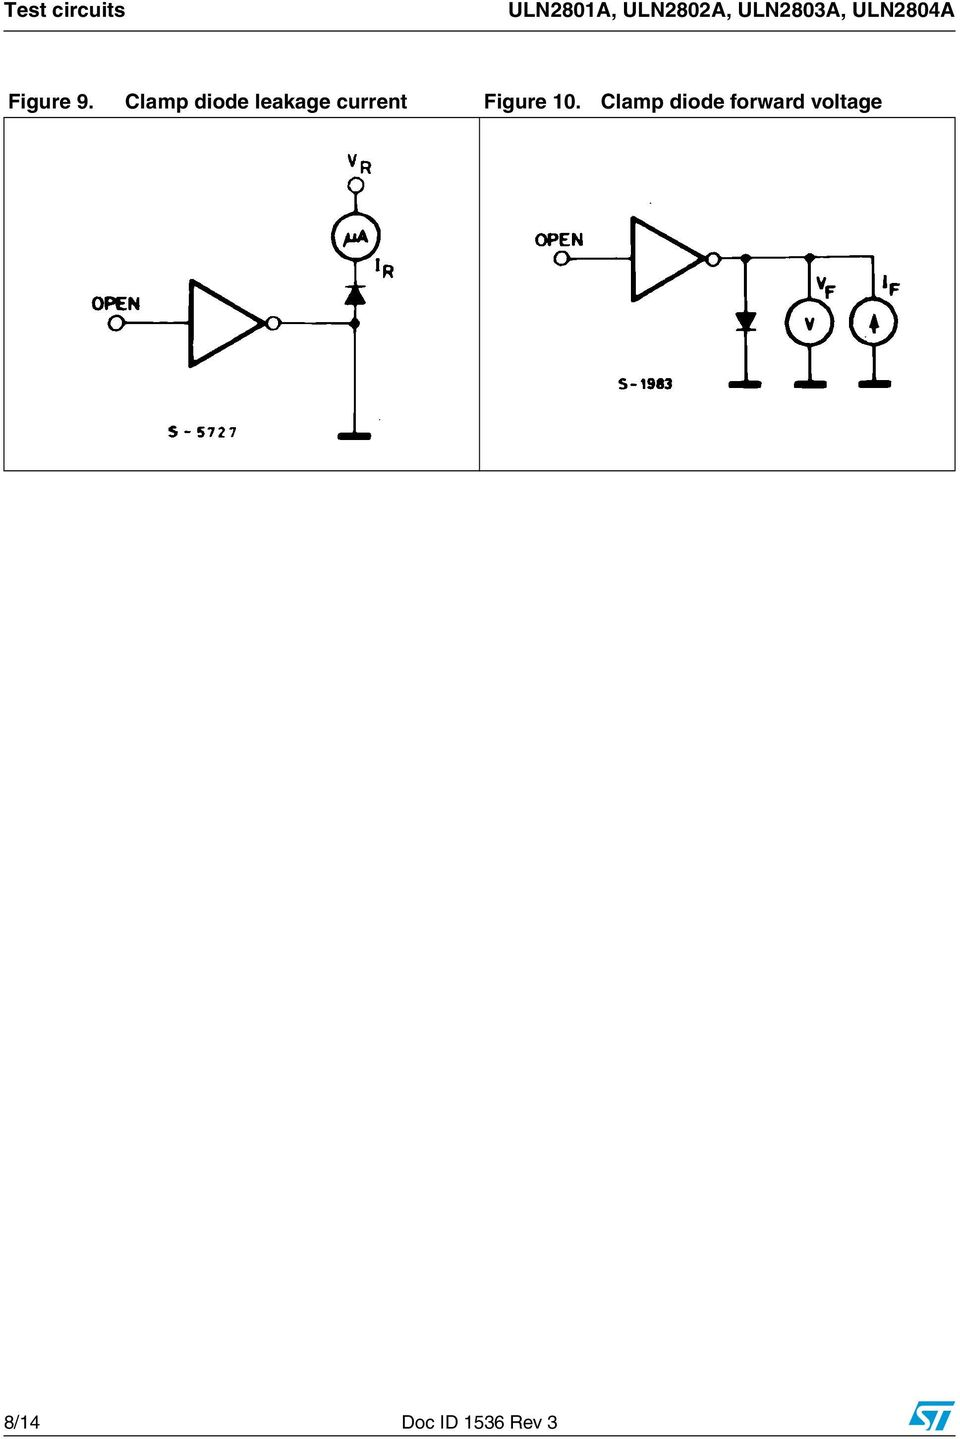 Uln2801a Uln2802a Uln2803a Uln2804a Pdf Bta41 600b Datasheet Application Note Electronic Circuit Projects Clamp Diode Leakage Current Figure 10